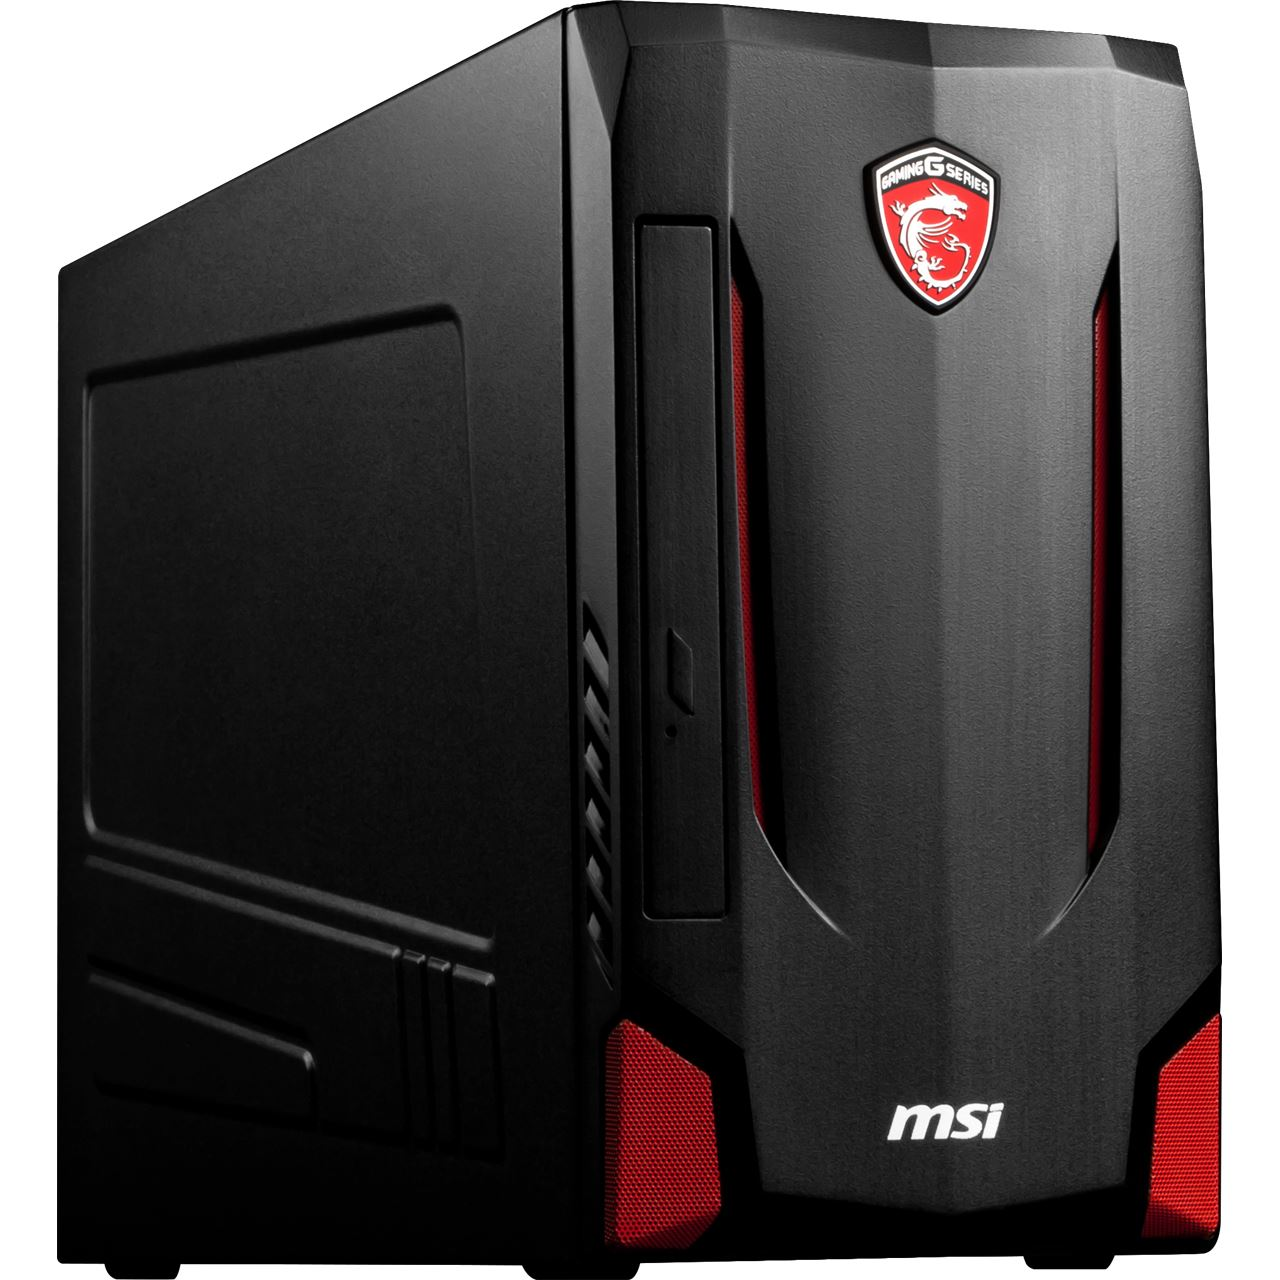 msi nightblademi b544696028gxxds10m i54460s 8gb 128gbssd. Black Bedroom Furniture Sets. Home Design Ideas